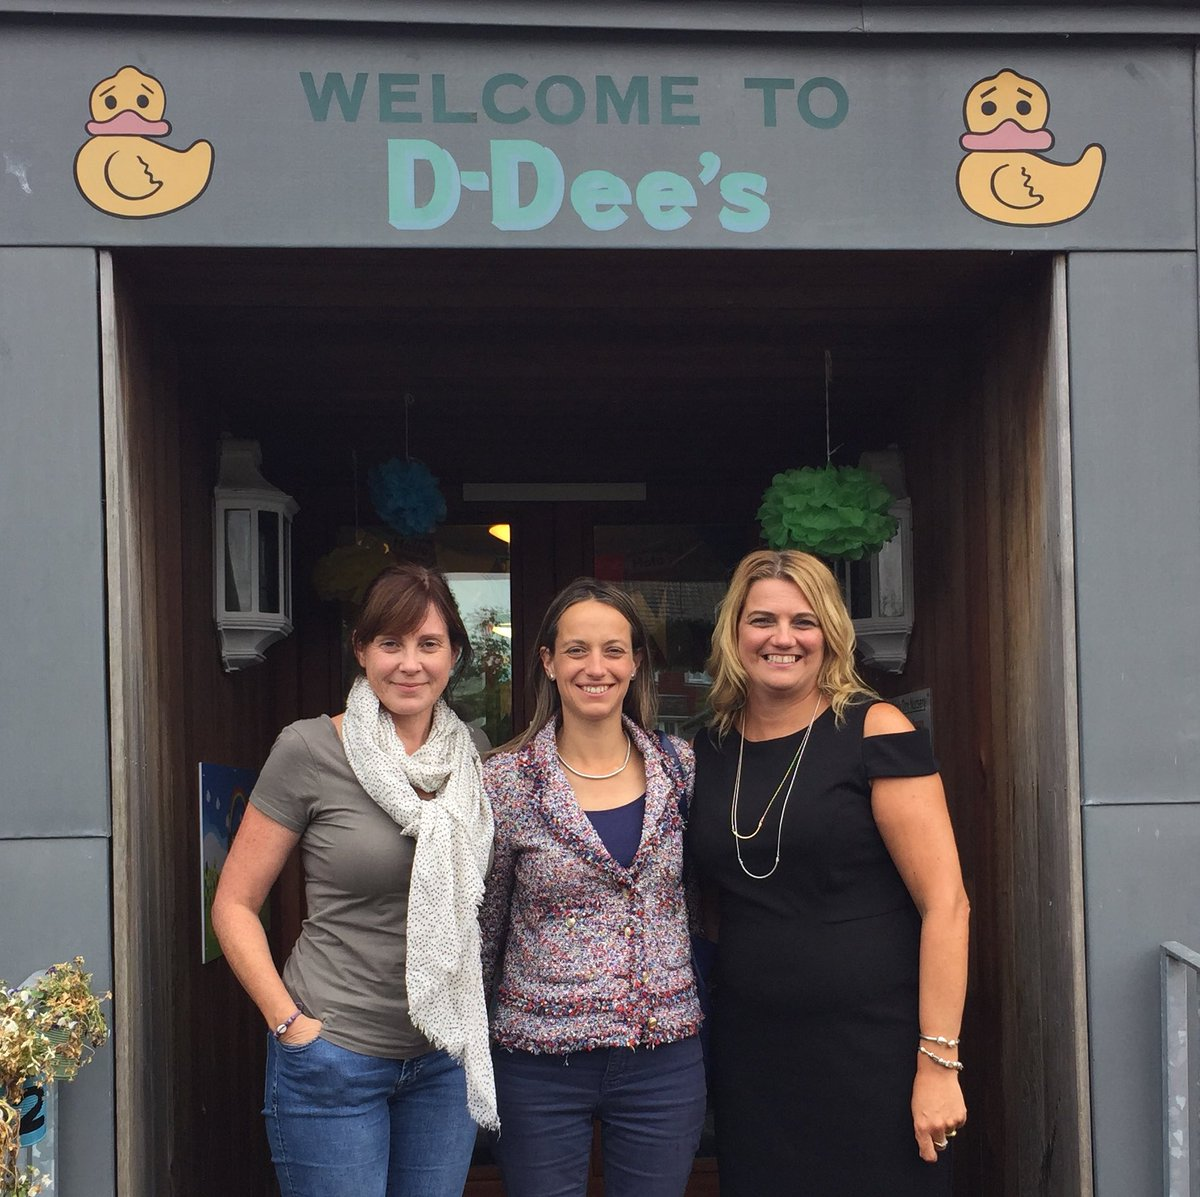 Helen Wly On Twitter At Brilliant D Dee S Nursery Boughton Under Blean To Discuss 30 Hours Policy Wish I Known Dees When Mine Were Preschool